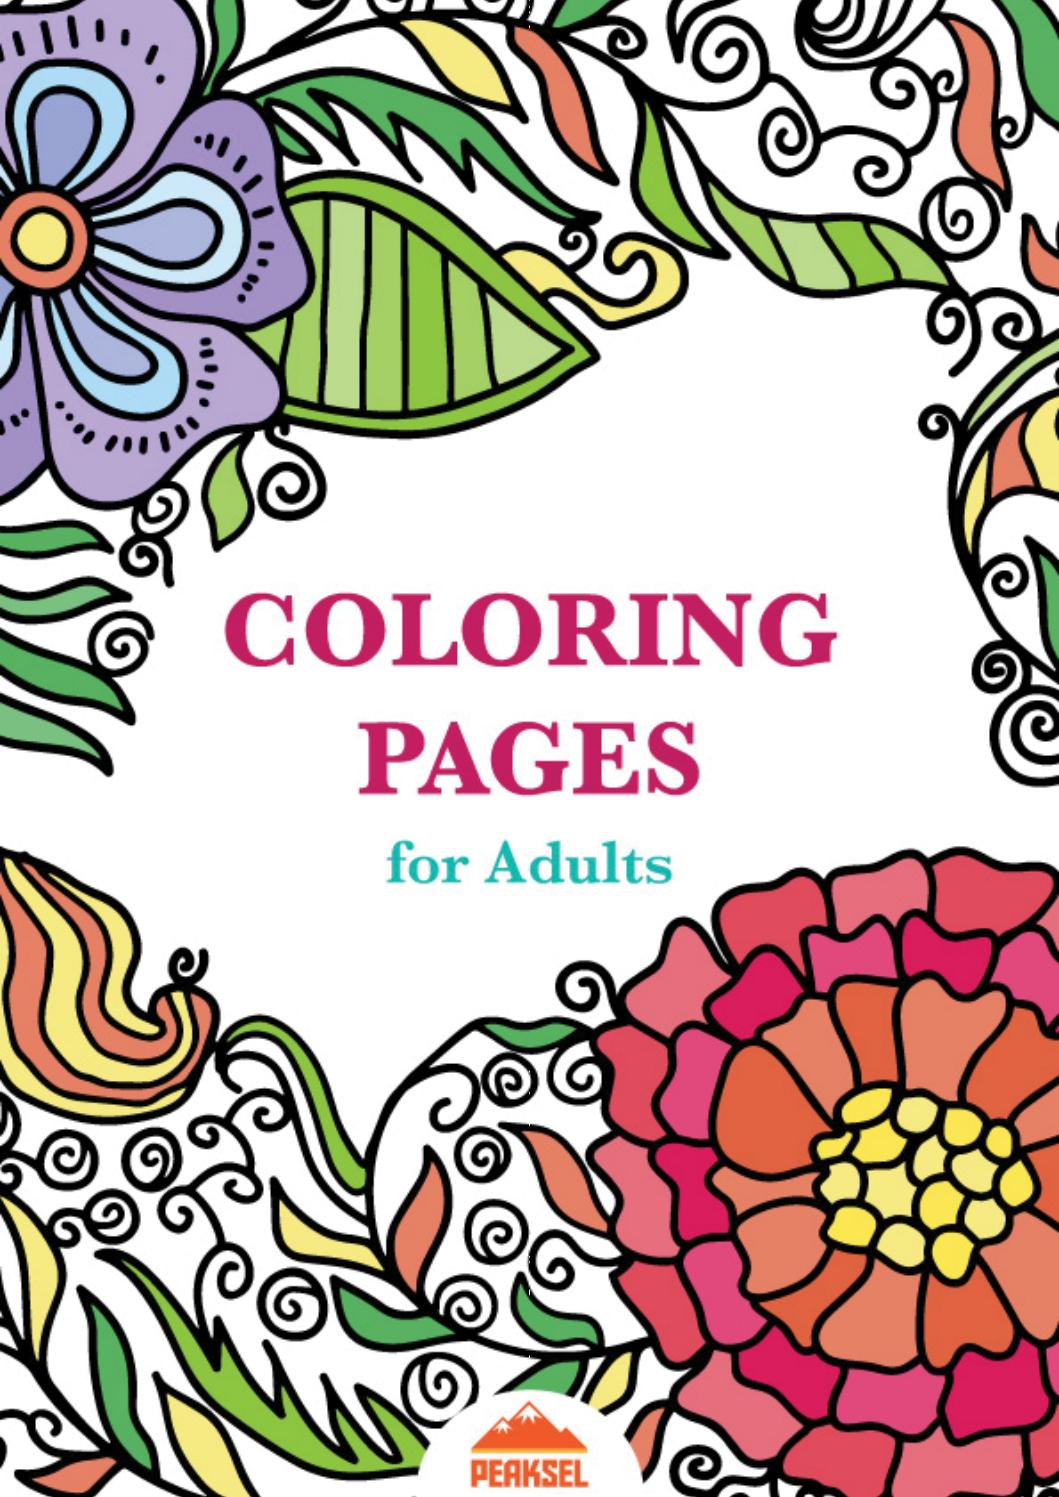 Coloring pages for adults free adult coloring book by Coloring books for young adults